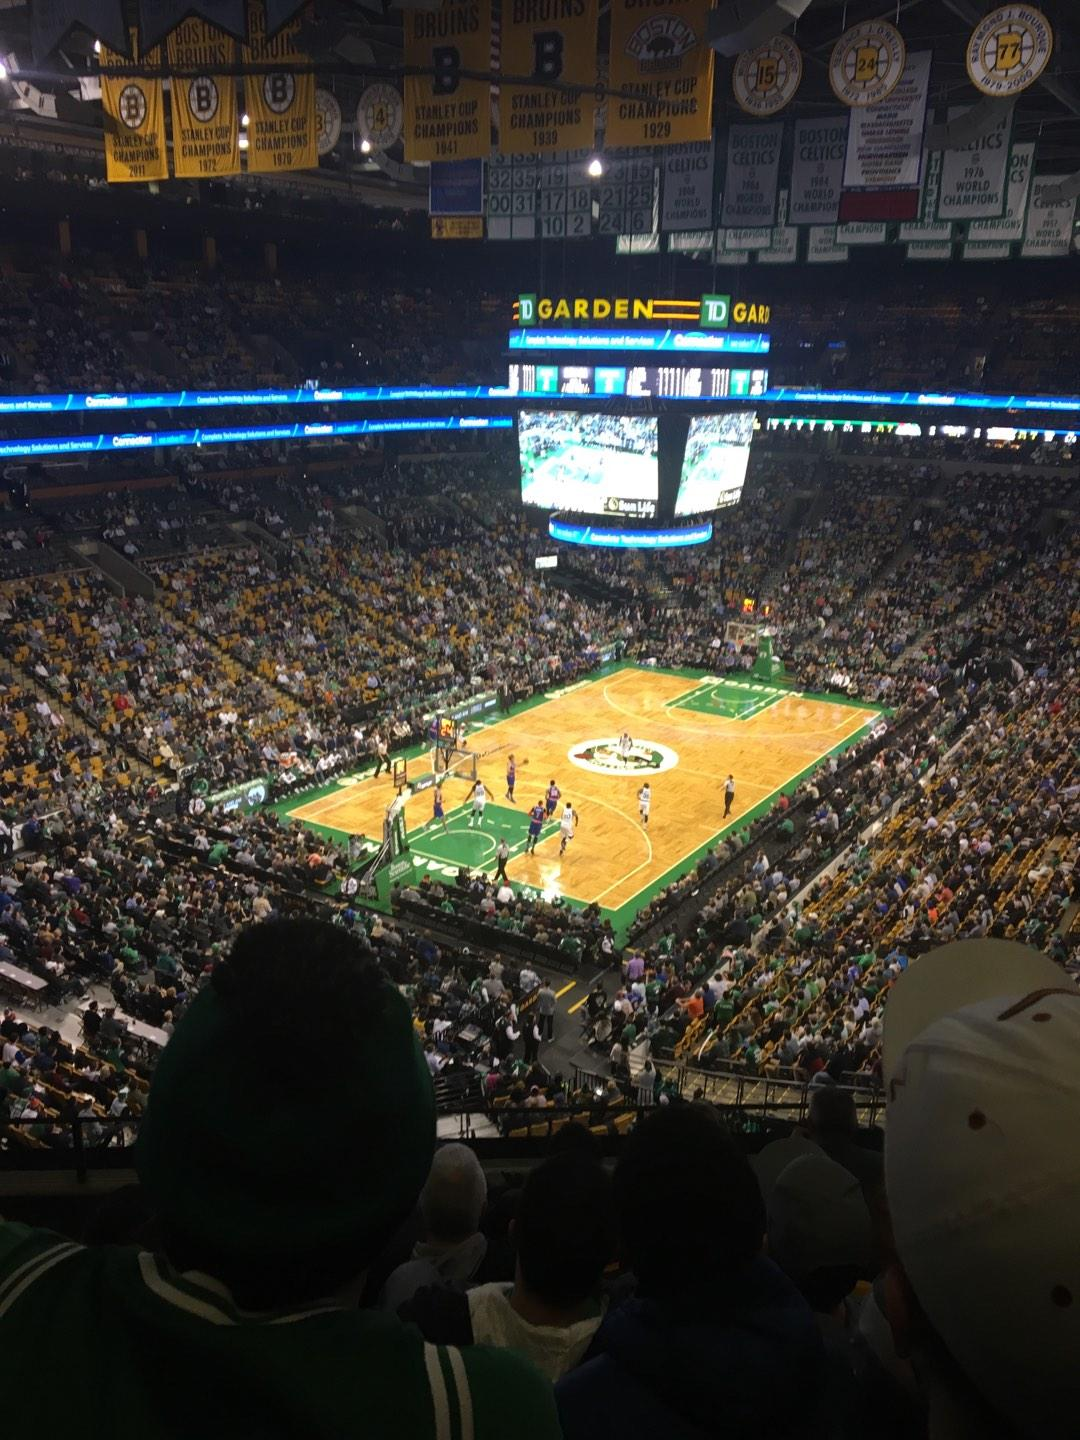 TD Garden Section Bal 321 Row 6 Seat 5